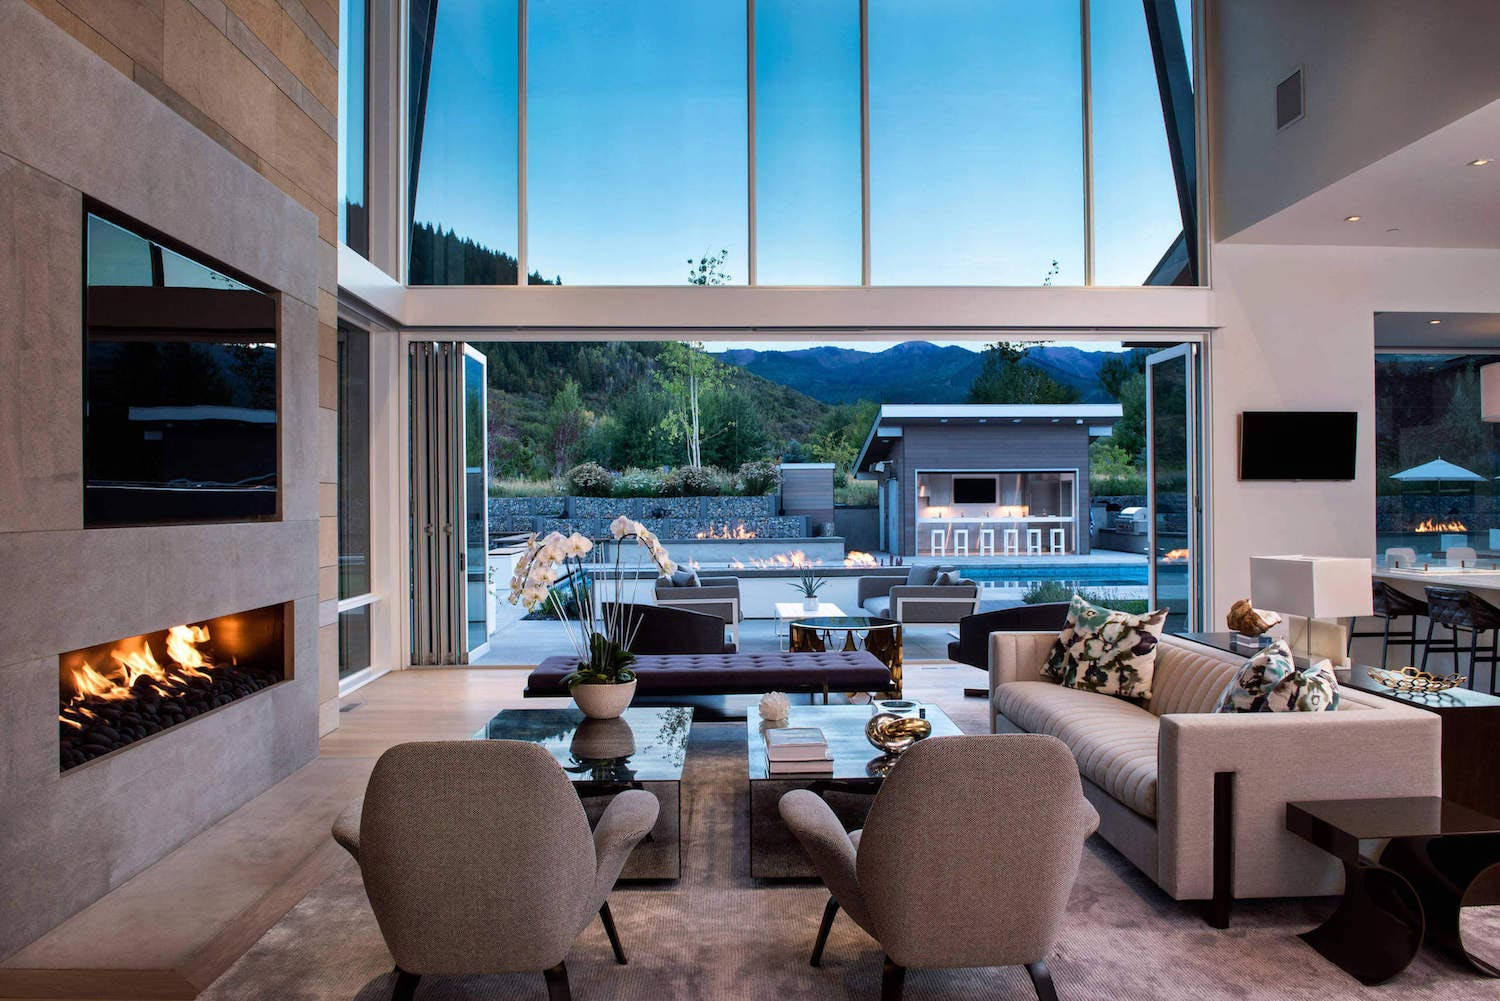 Park City 2 Contemporary Residence By